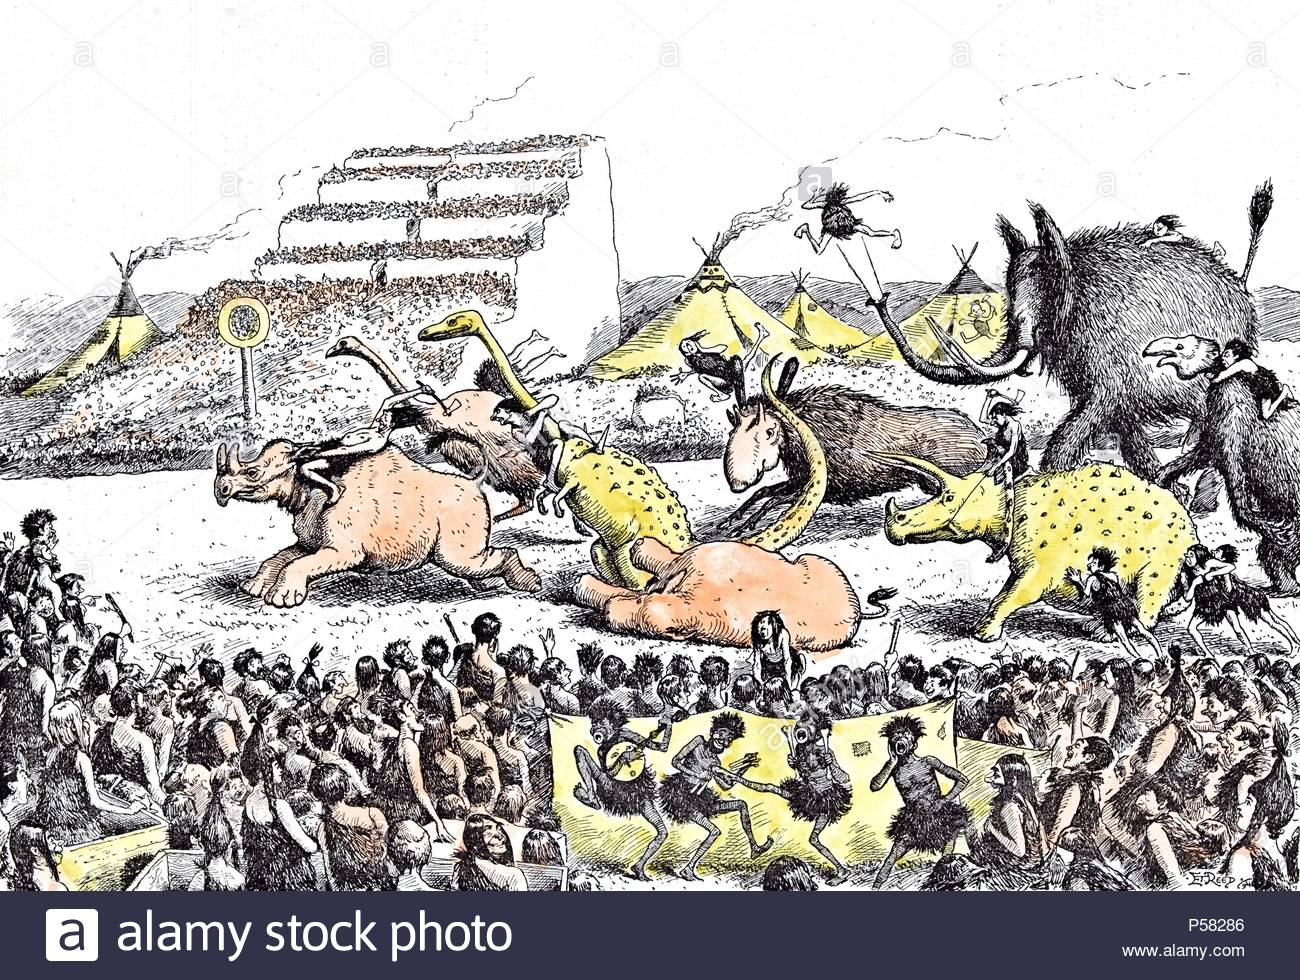 Even 1860 Stock Photos & Even 1860 Stock Images - Alamy